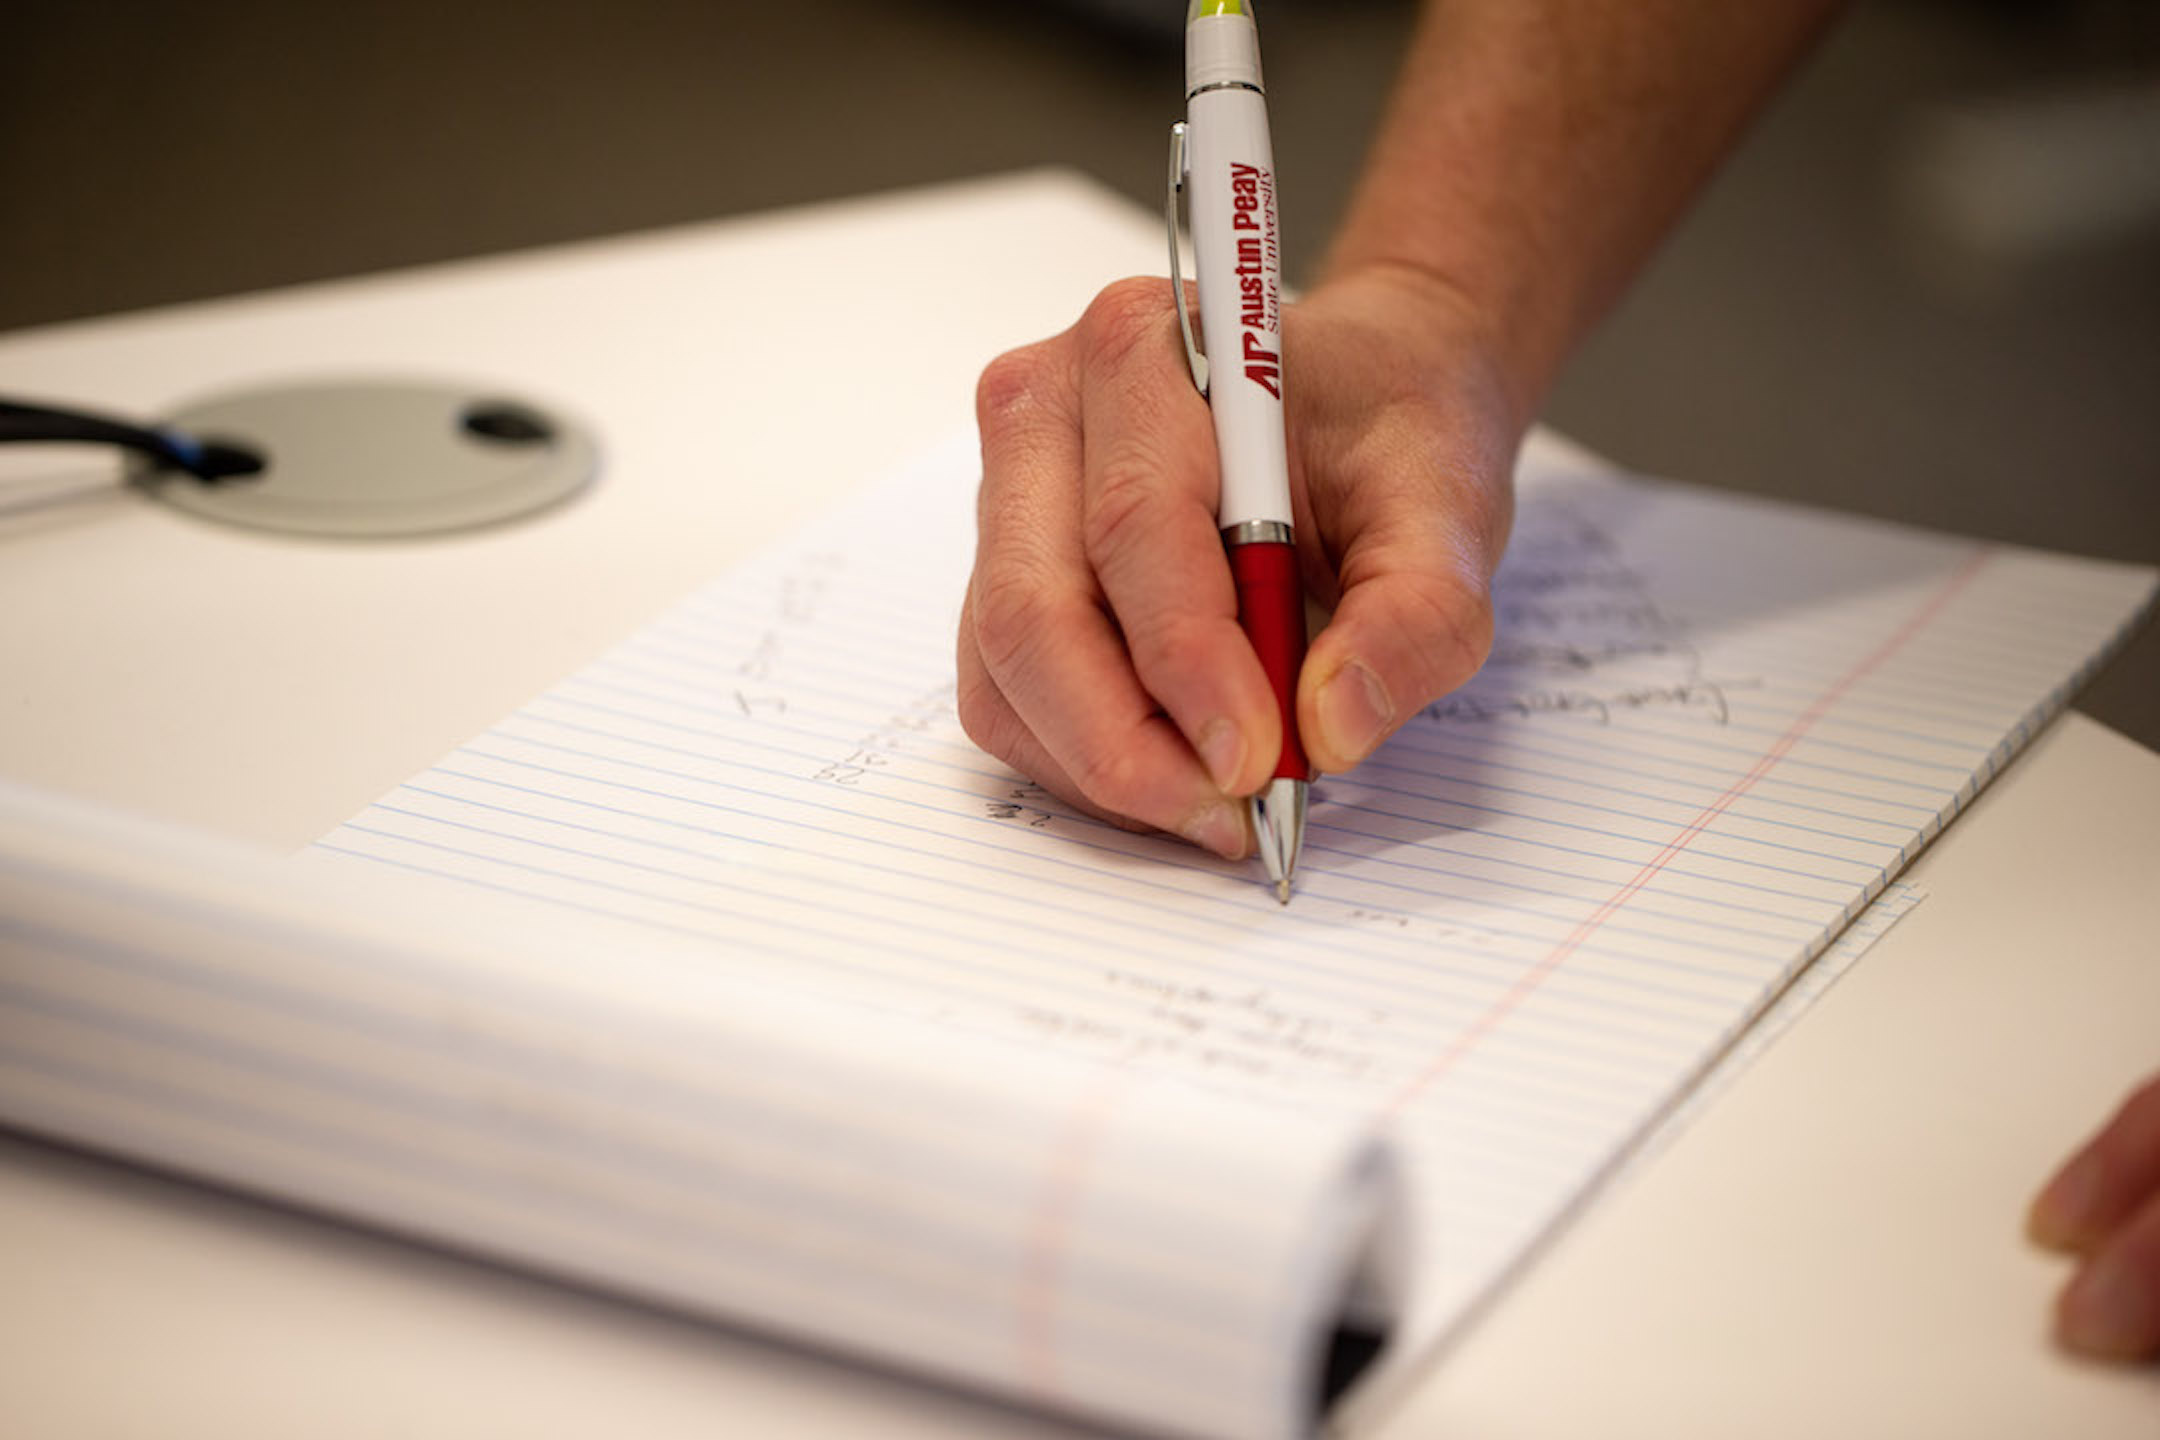 Austin Peay alum to offer creative writing classes for students to tap into their creative side